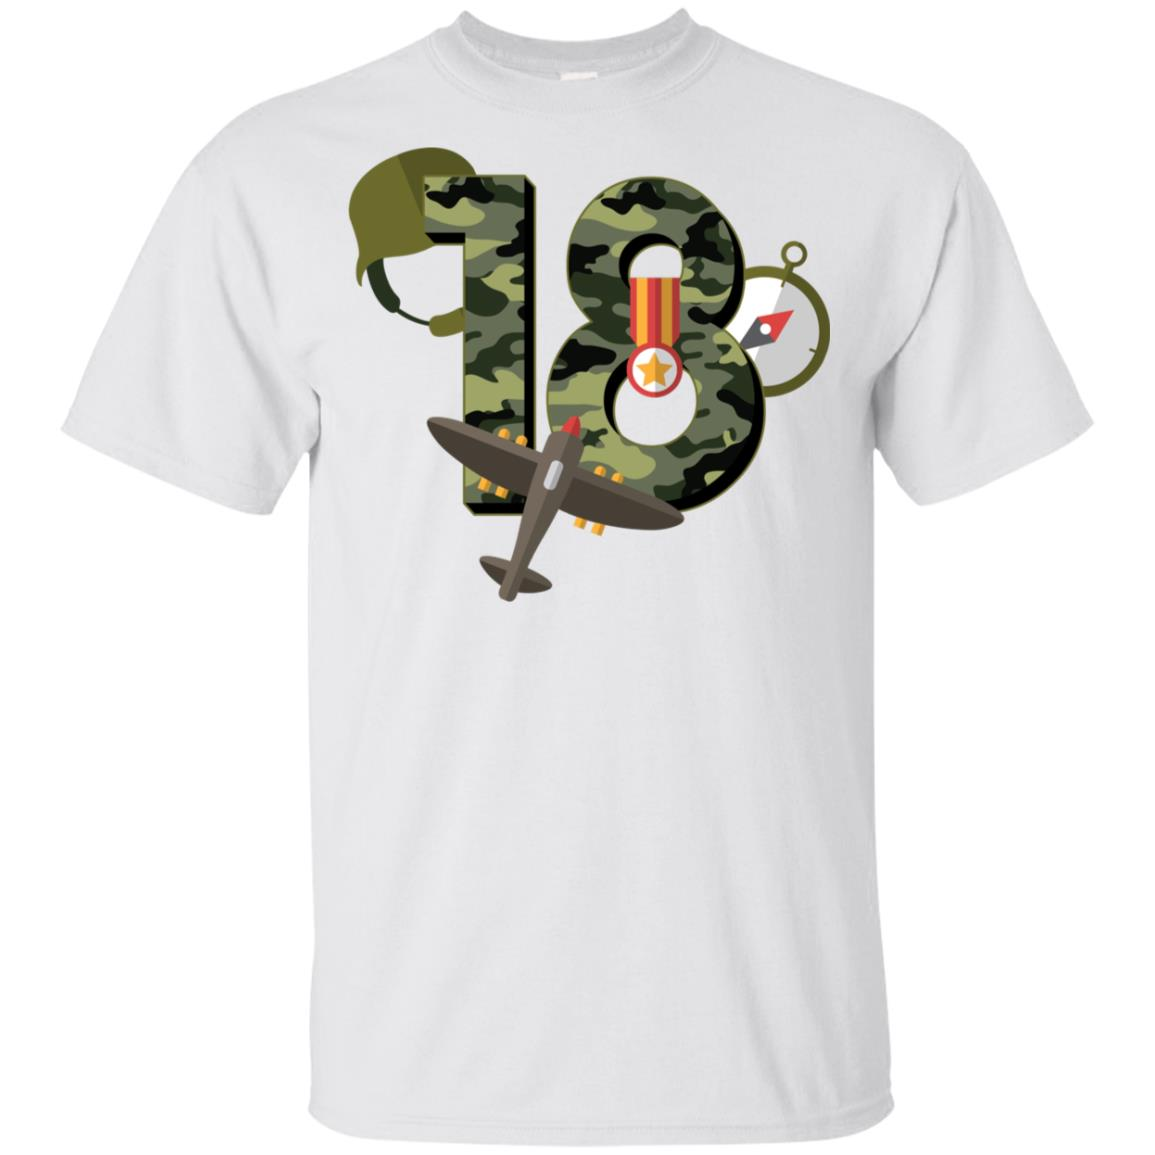 18th Birthday Camouflage Army Soldier 18 Youth Short Sleeve